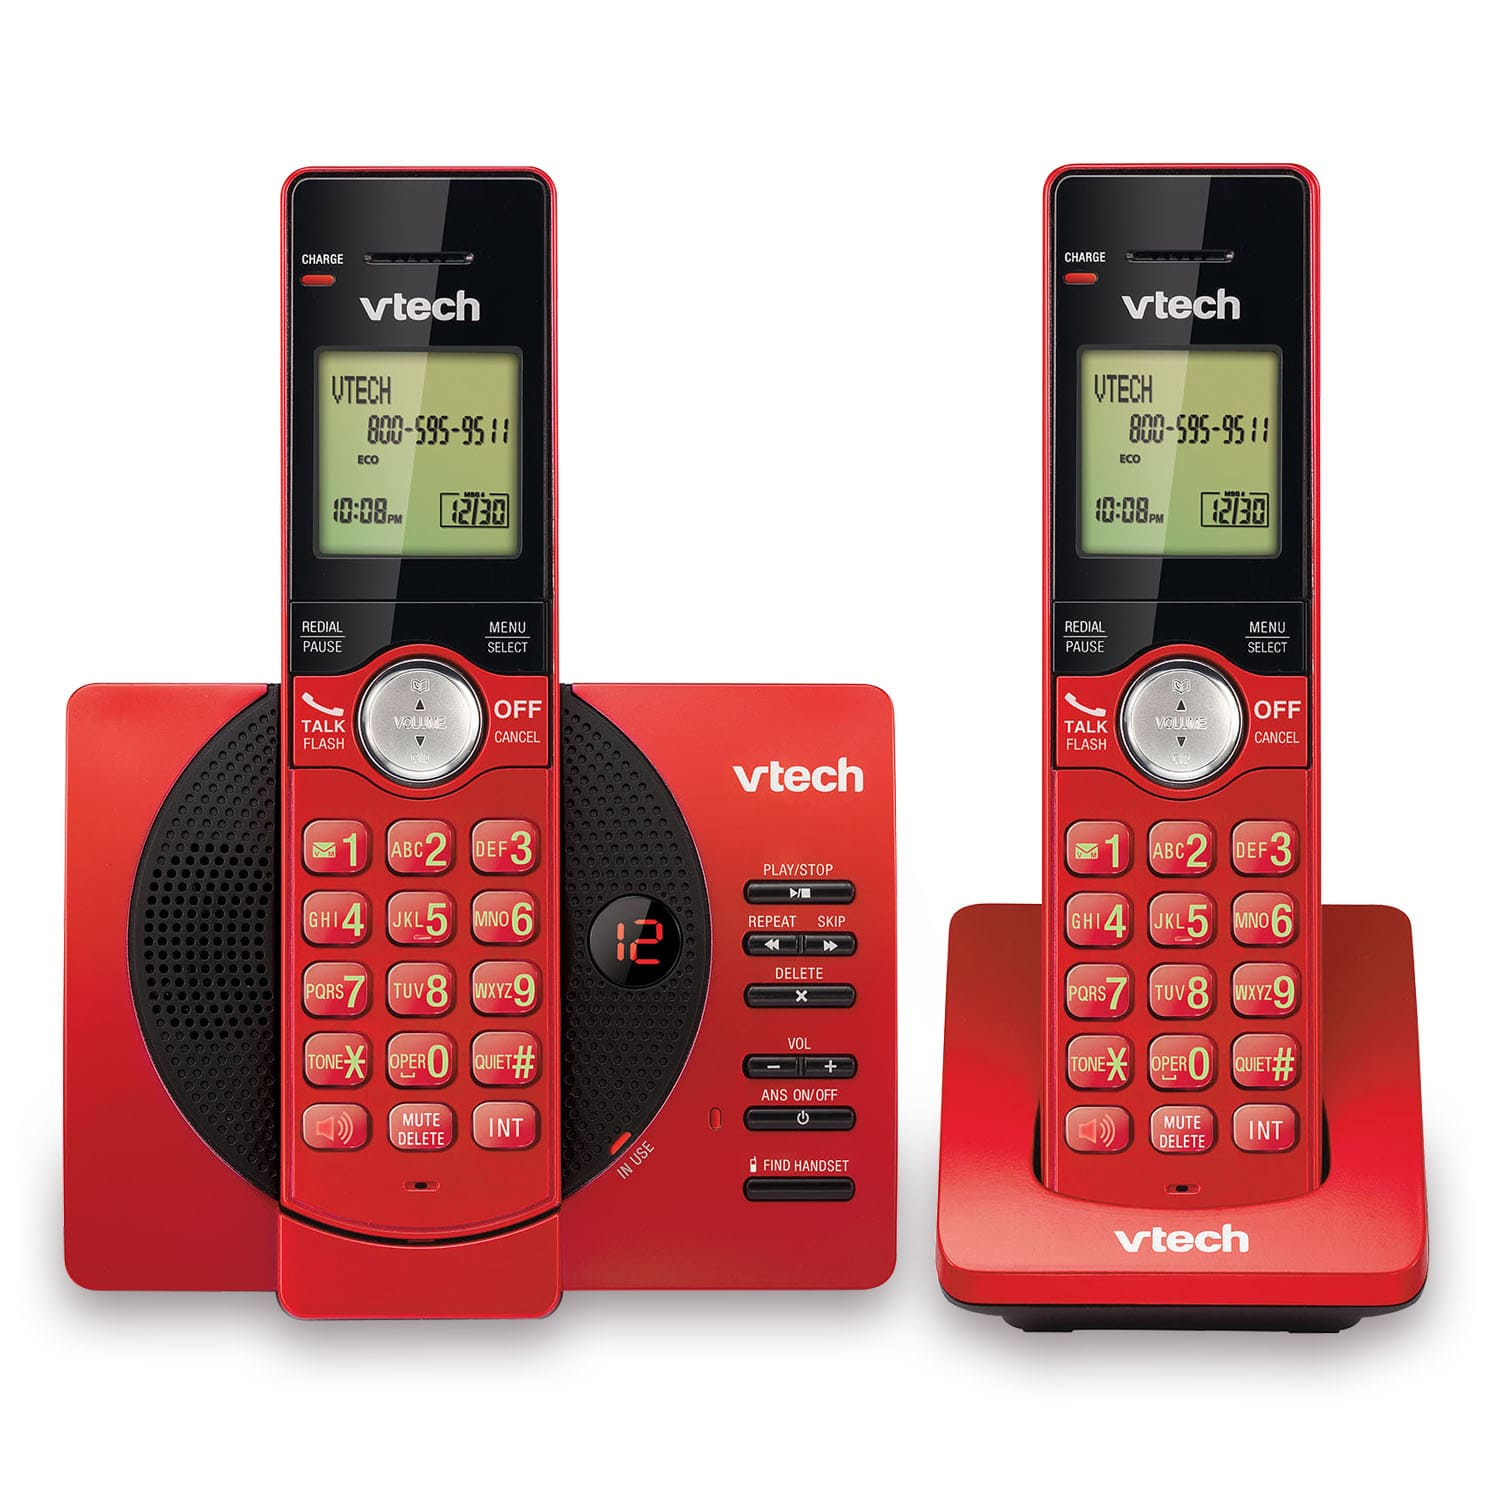 2 handset cordless answering system with caller id call waiting cs6929 26 vtech cordless phones. Black Bedroom Furniture Sets. Home Design Ideas